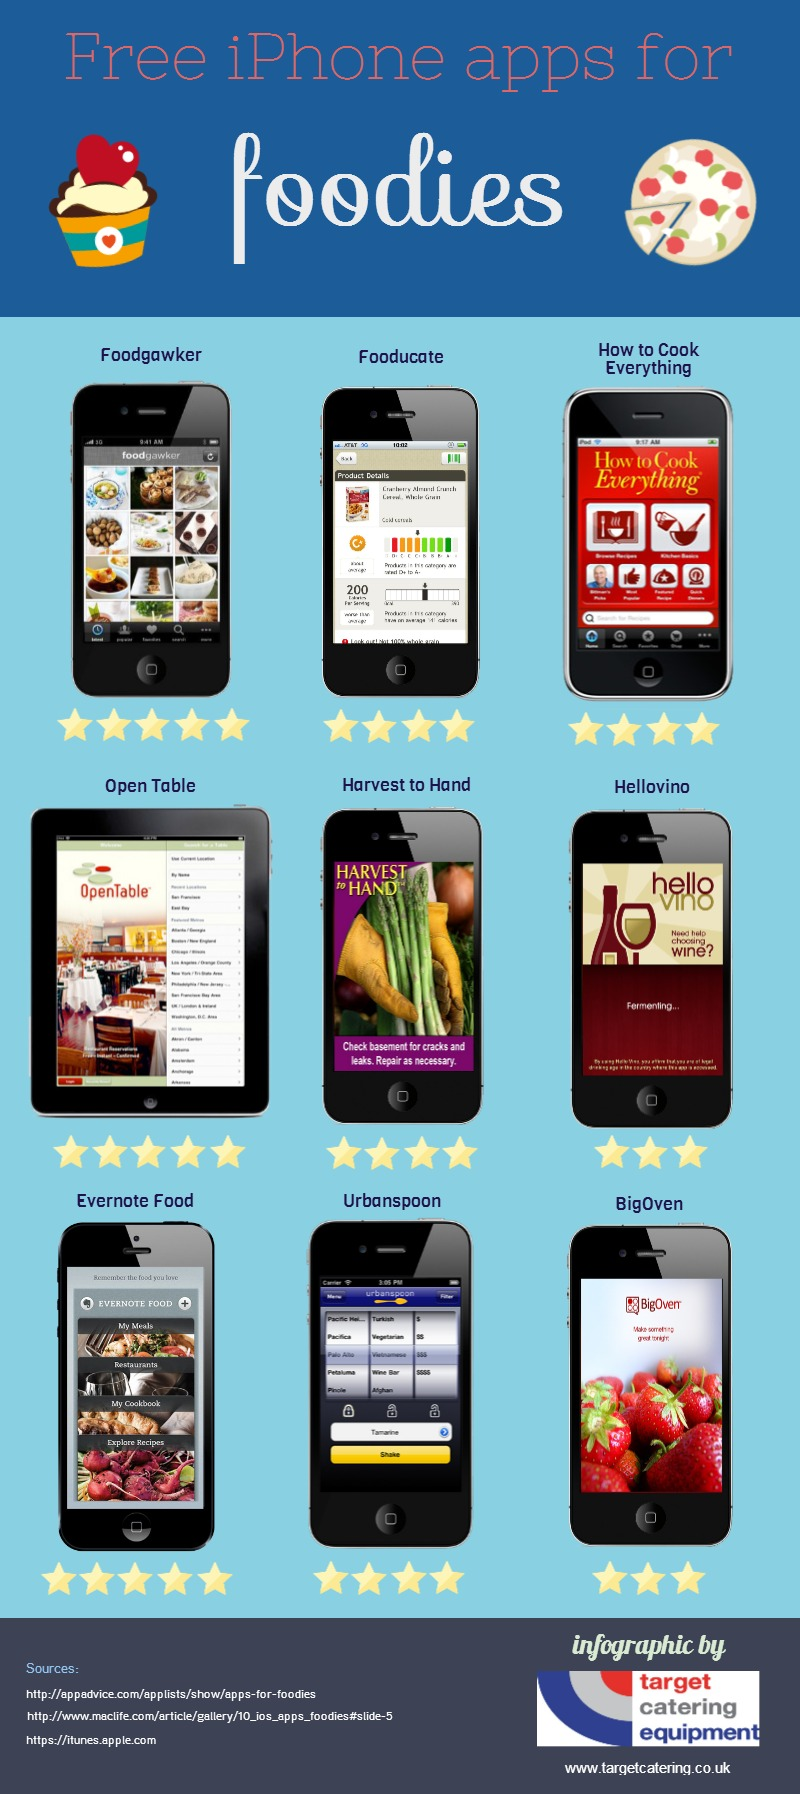 10 Apps for Foodies